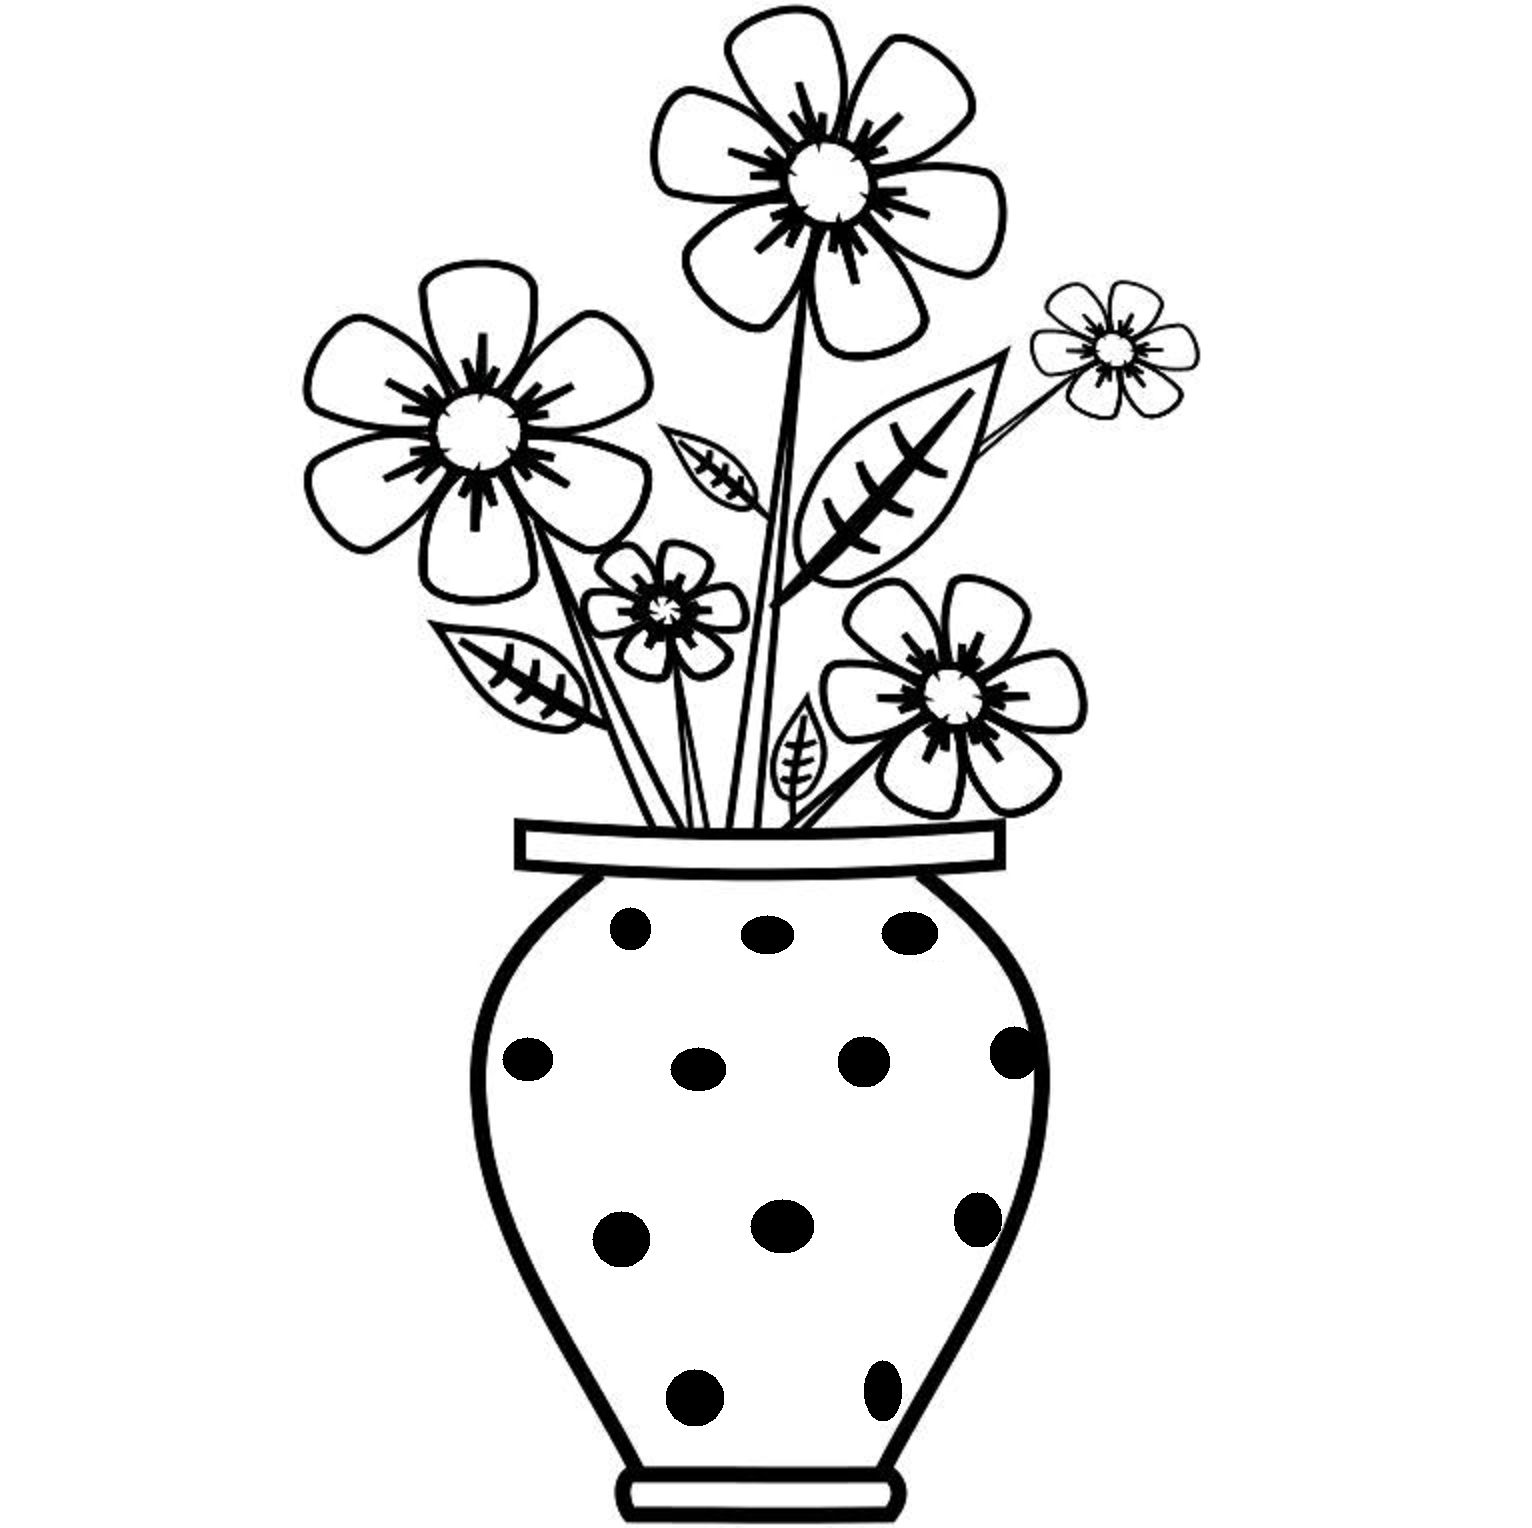 how to draw a vase with flowers step by step vase of flowers pencilsketch roses sketches draw how by to step a with step vase flowers